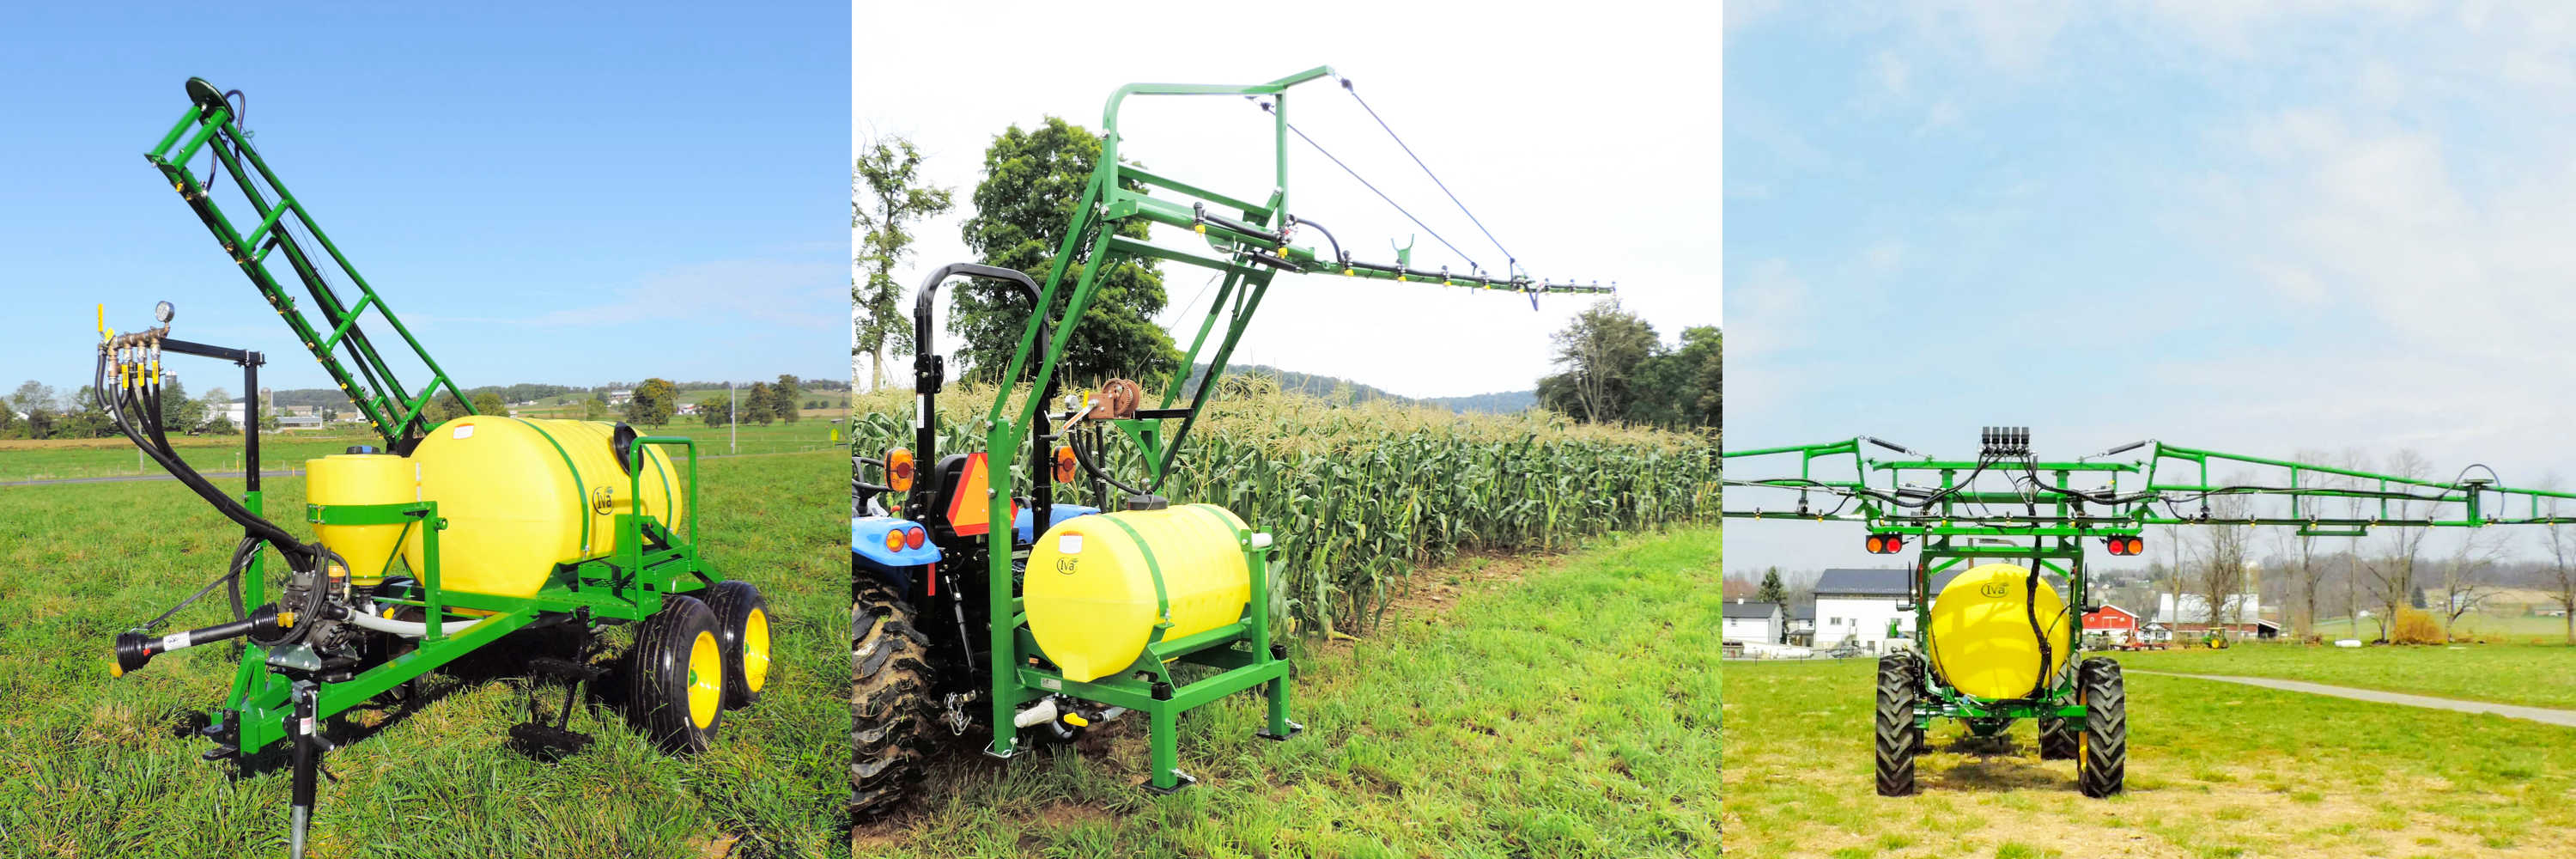 Iva Mfg builds produces sprayers for vegetable growers.